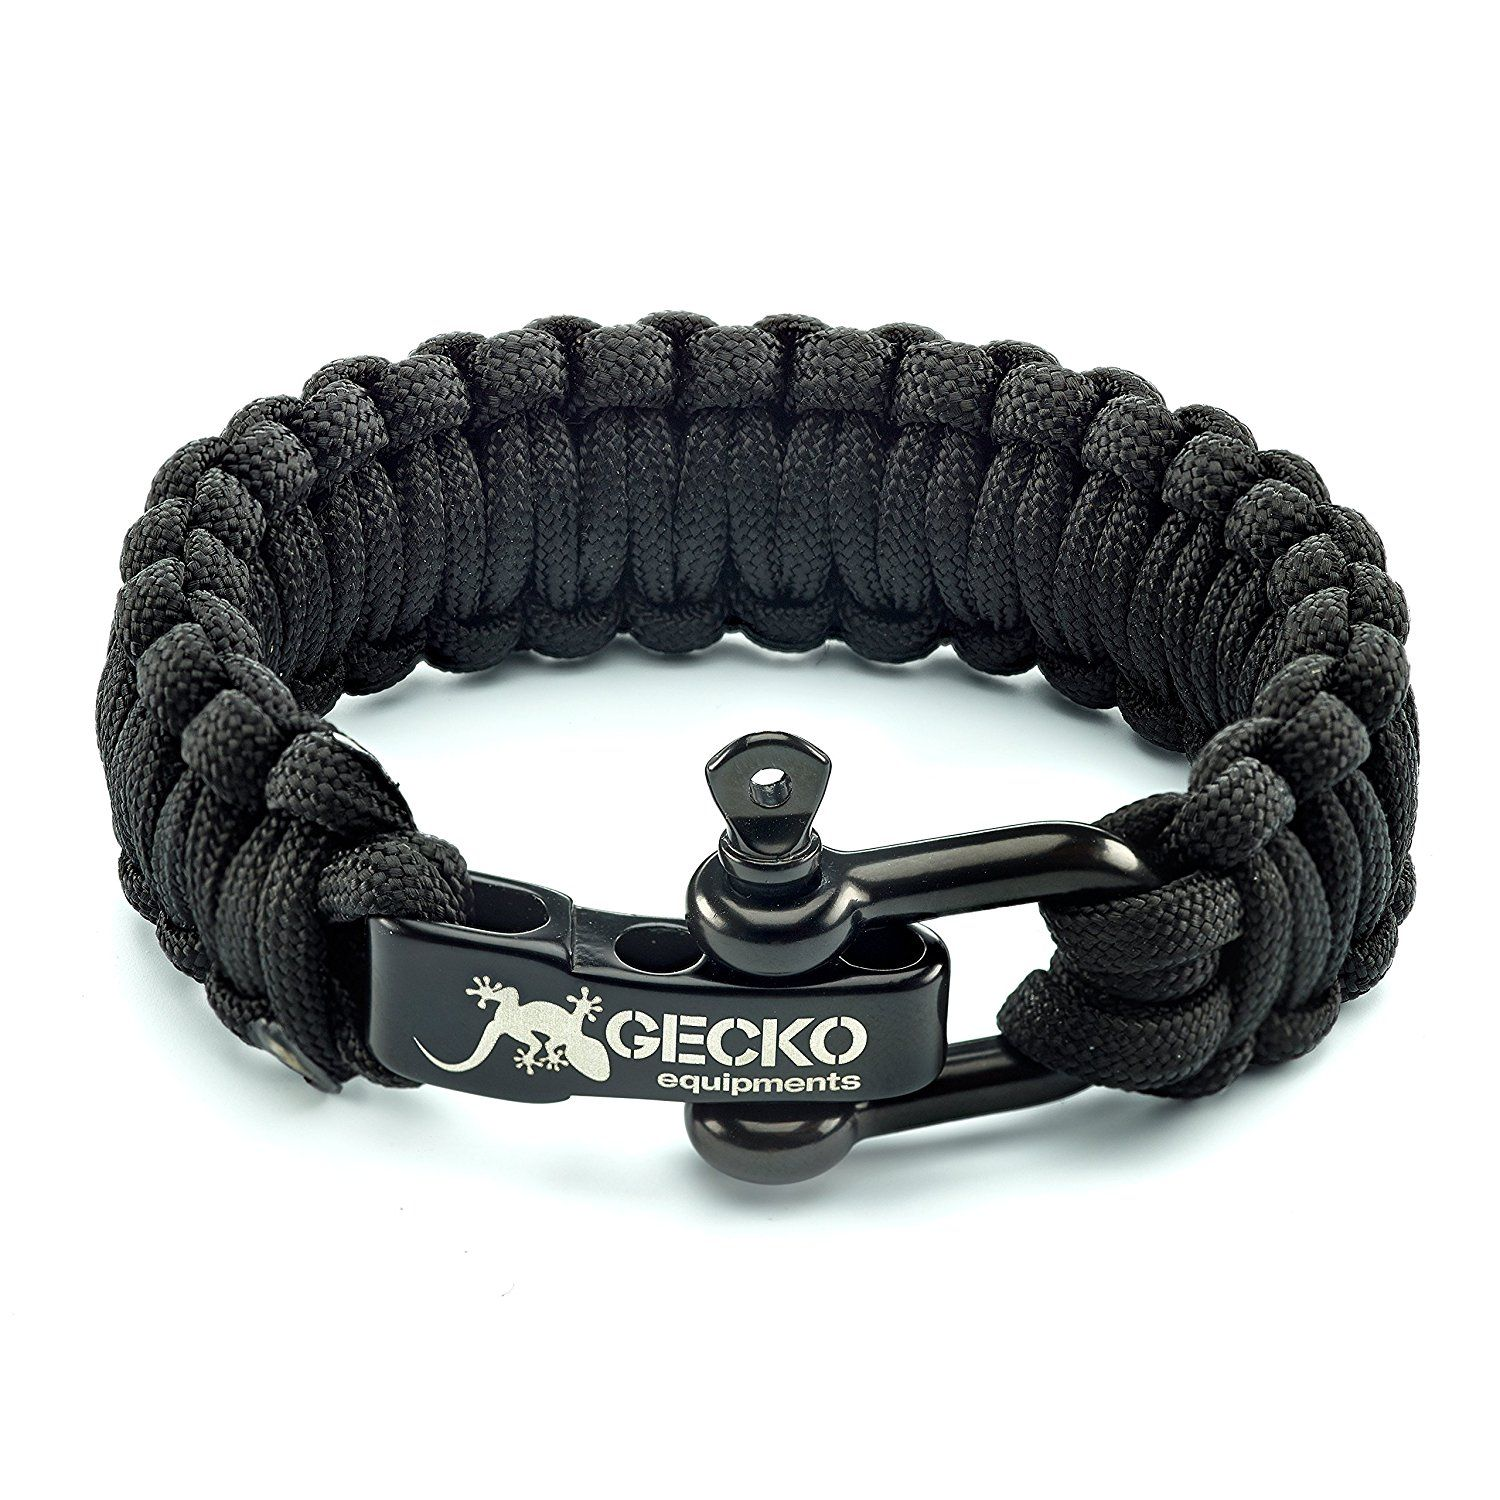 The 10 Best Paracord Survival Bracelet In 2020 Reviews With